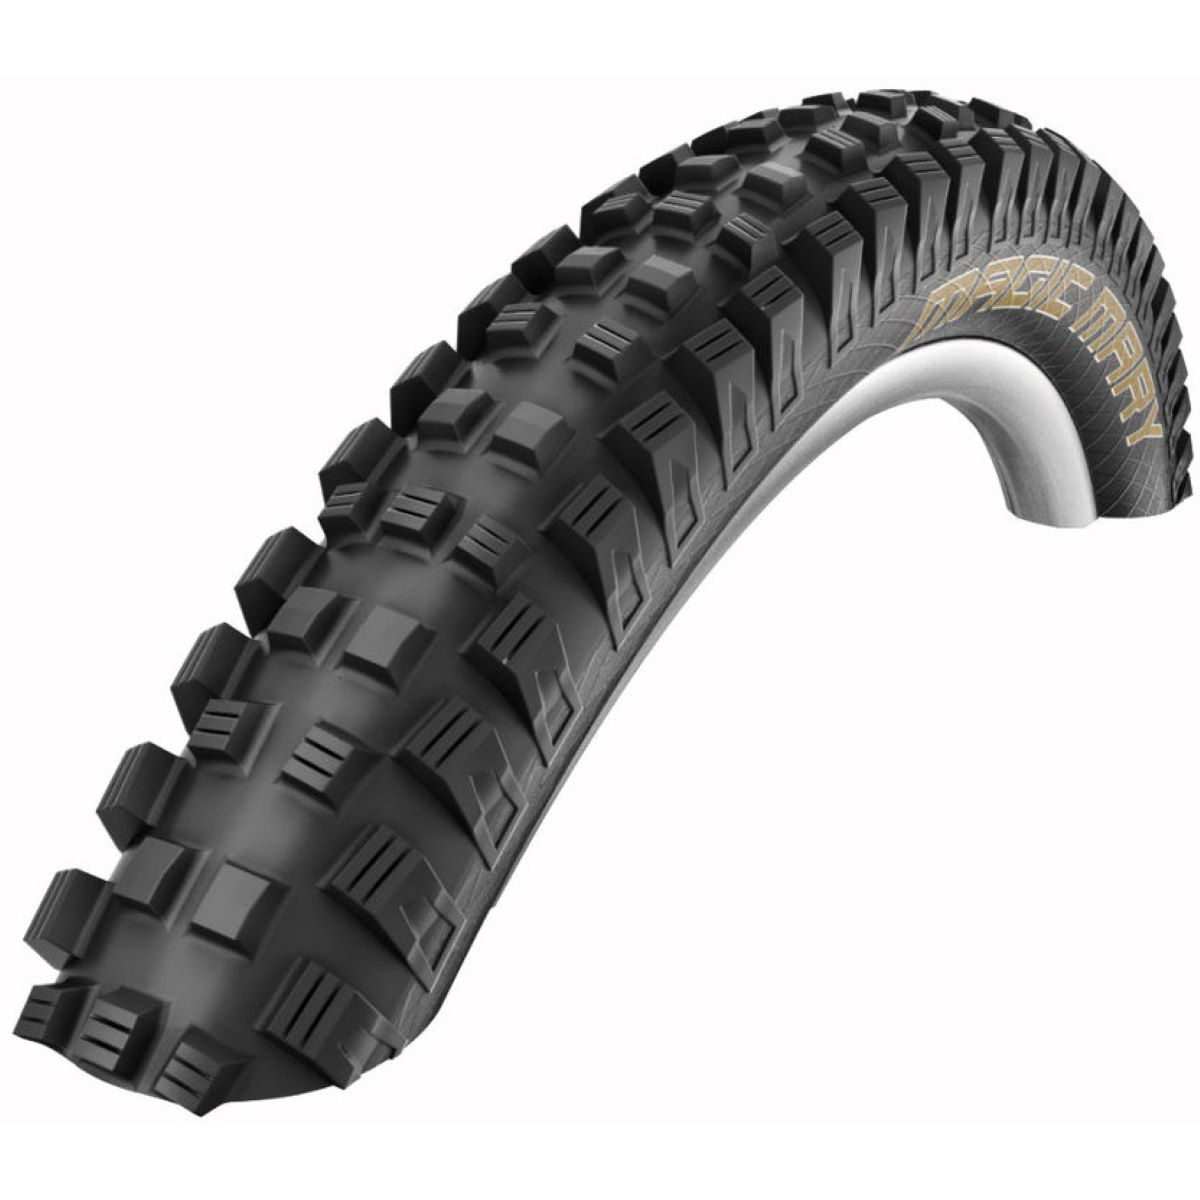 Pneu Schwalbe Magic Mary Snakeskin TL-Easy 29er (souple) - 29 x 2.35 Noir Pneus VTT